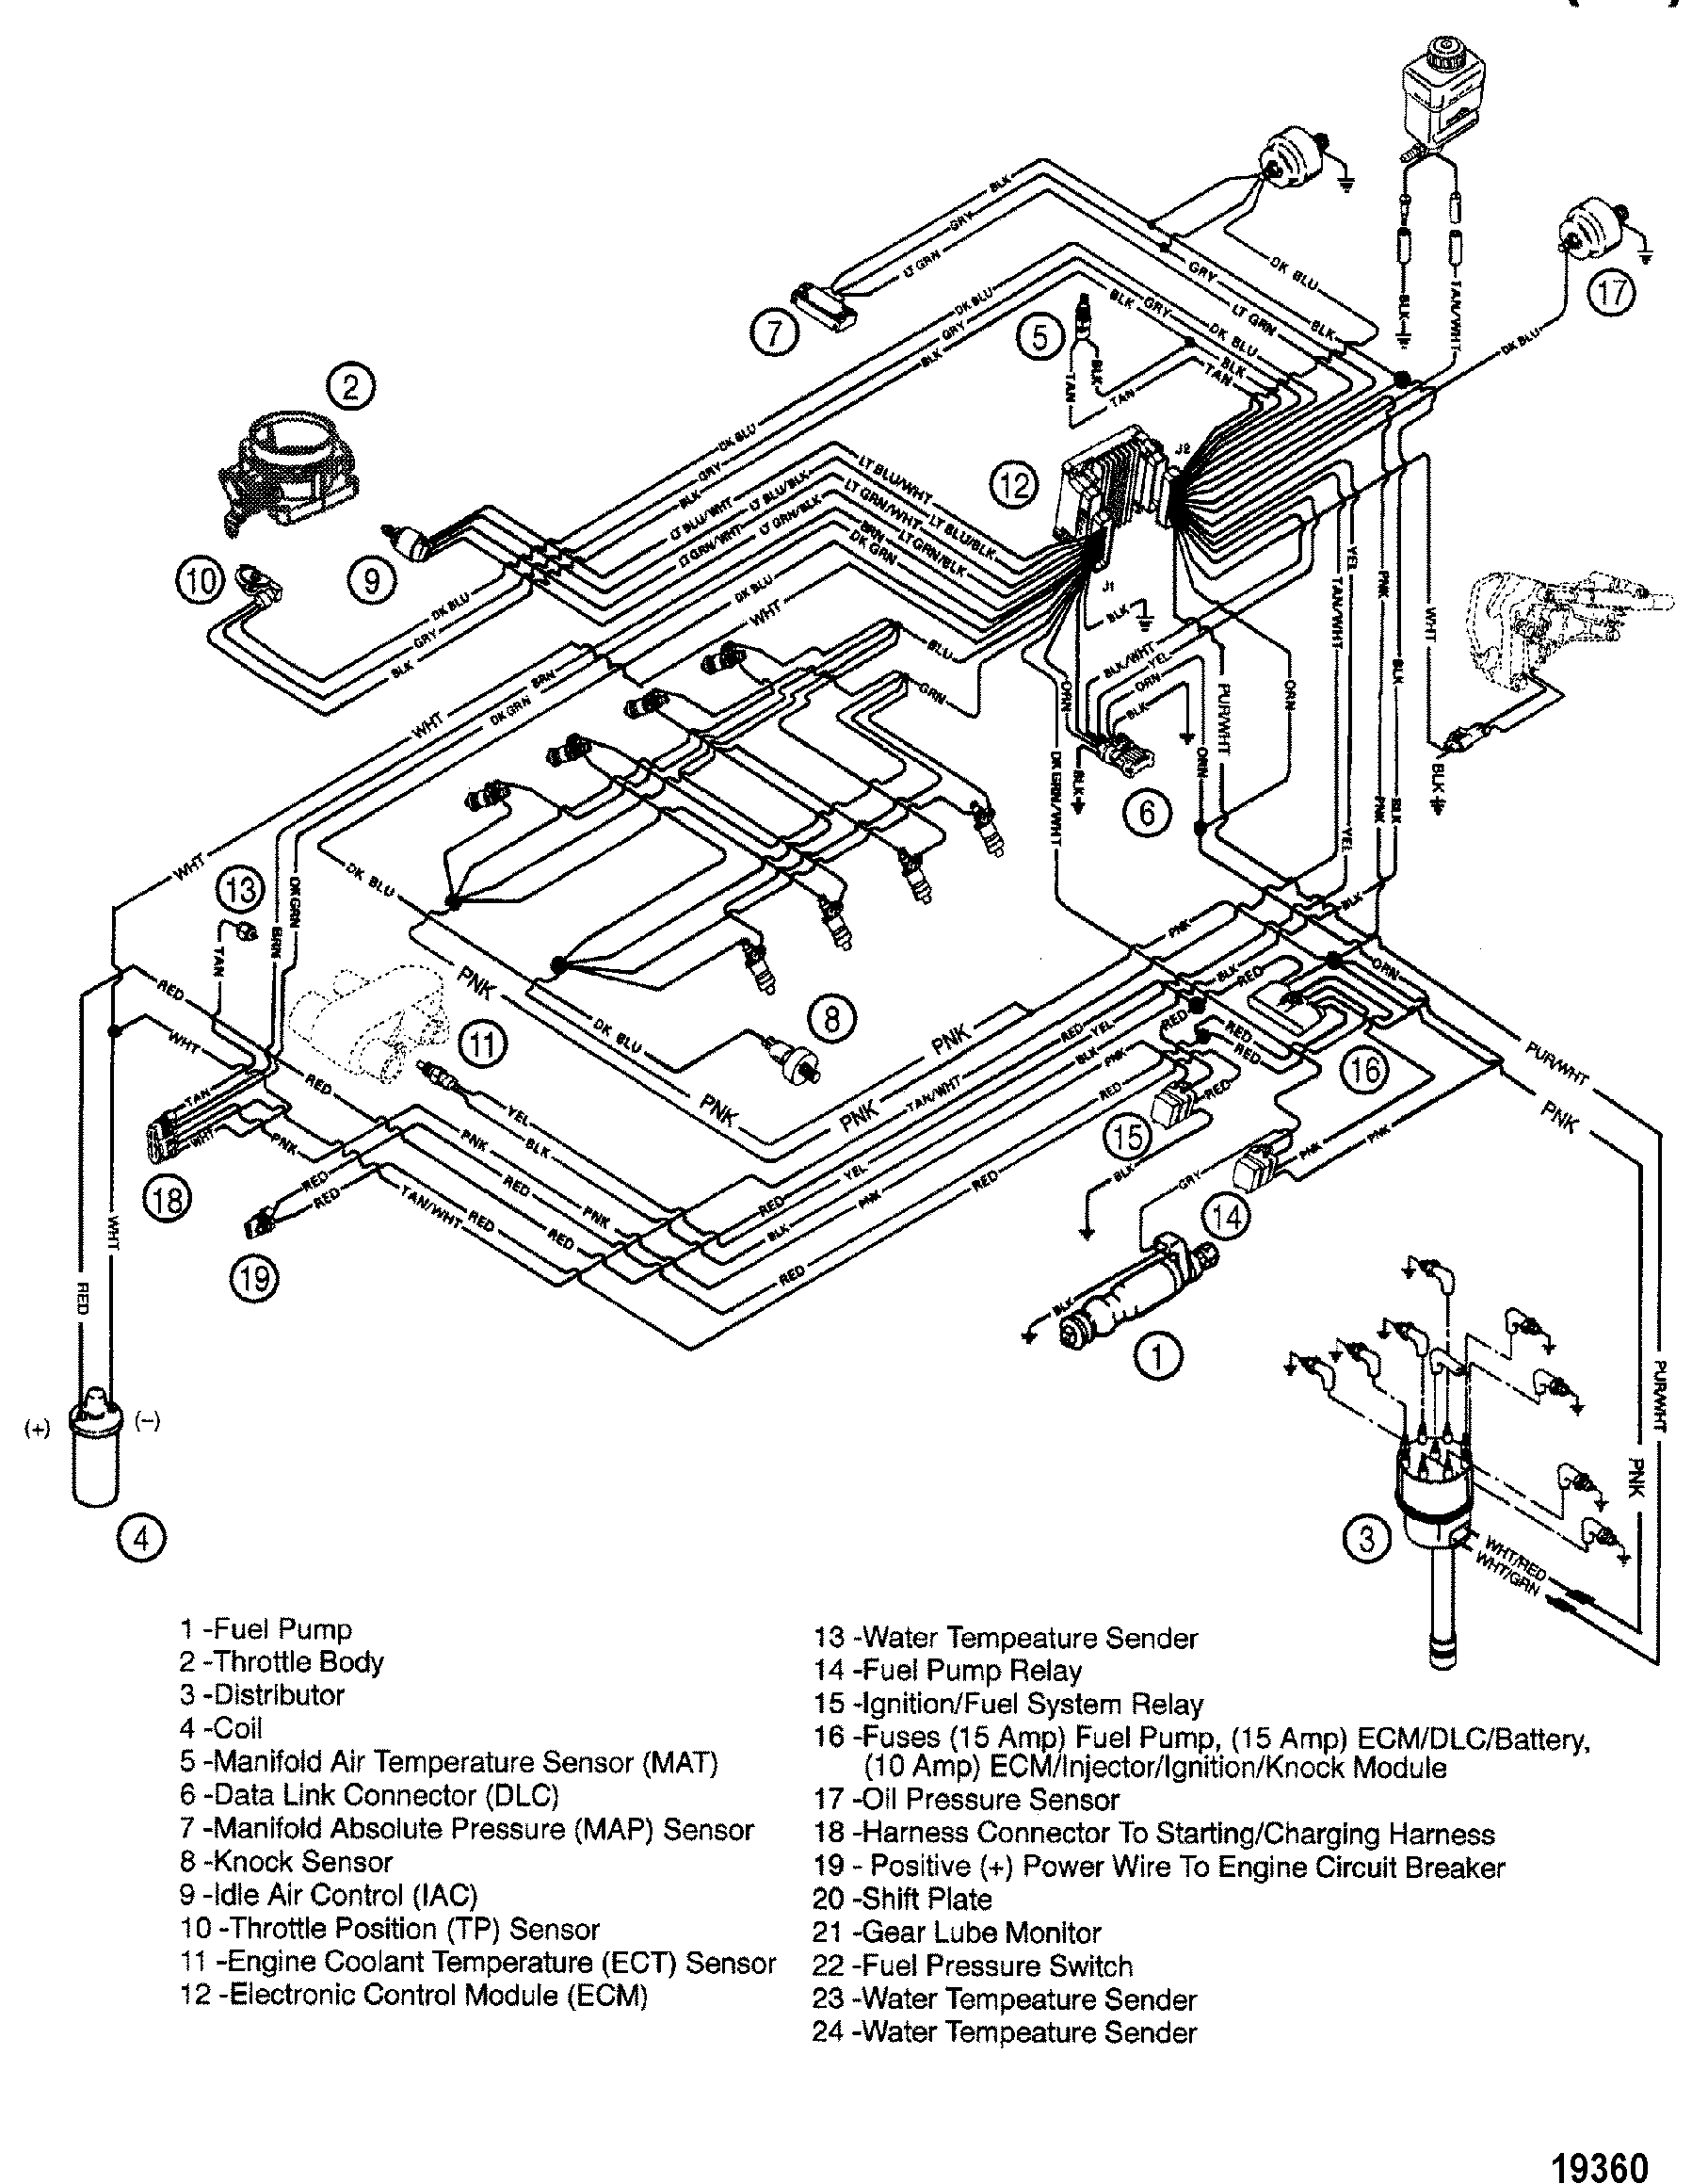 Mercruiser 350 Wiring Diagram - Great Installation Of Wiring Diagram • - Mercruiser 5.7 Wiring Diagram